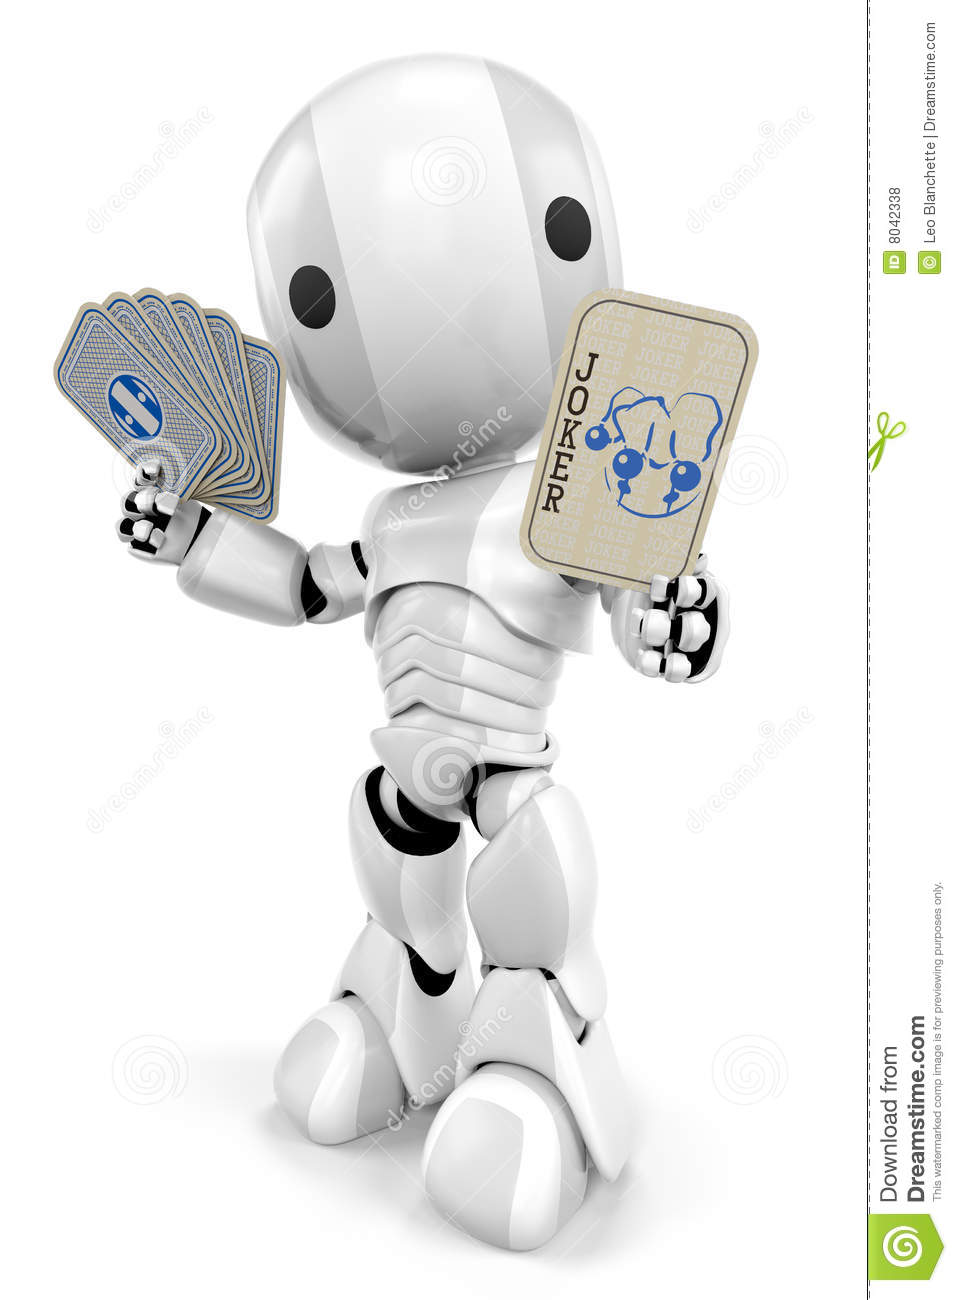 Robot With Cards And Joker Royalty Free Stock Photos